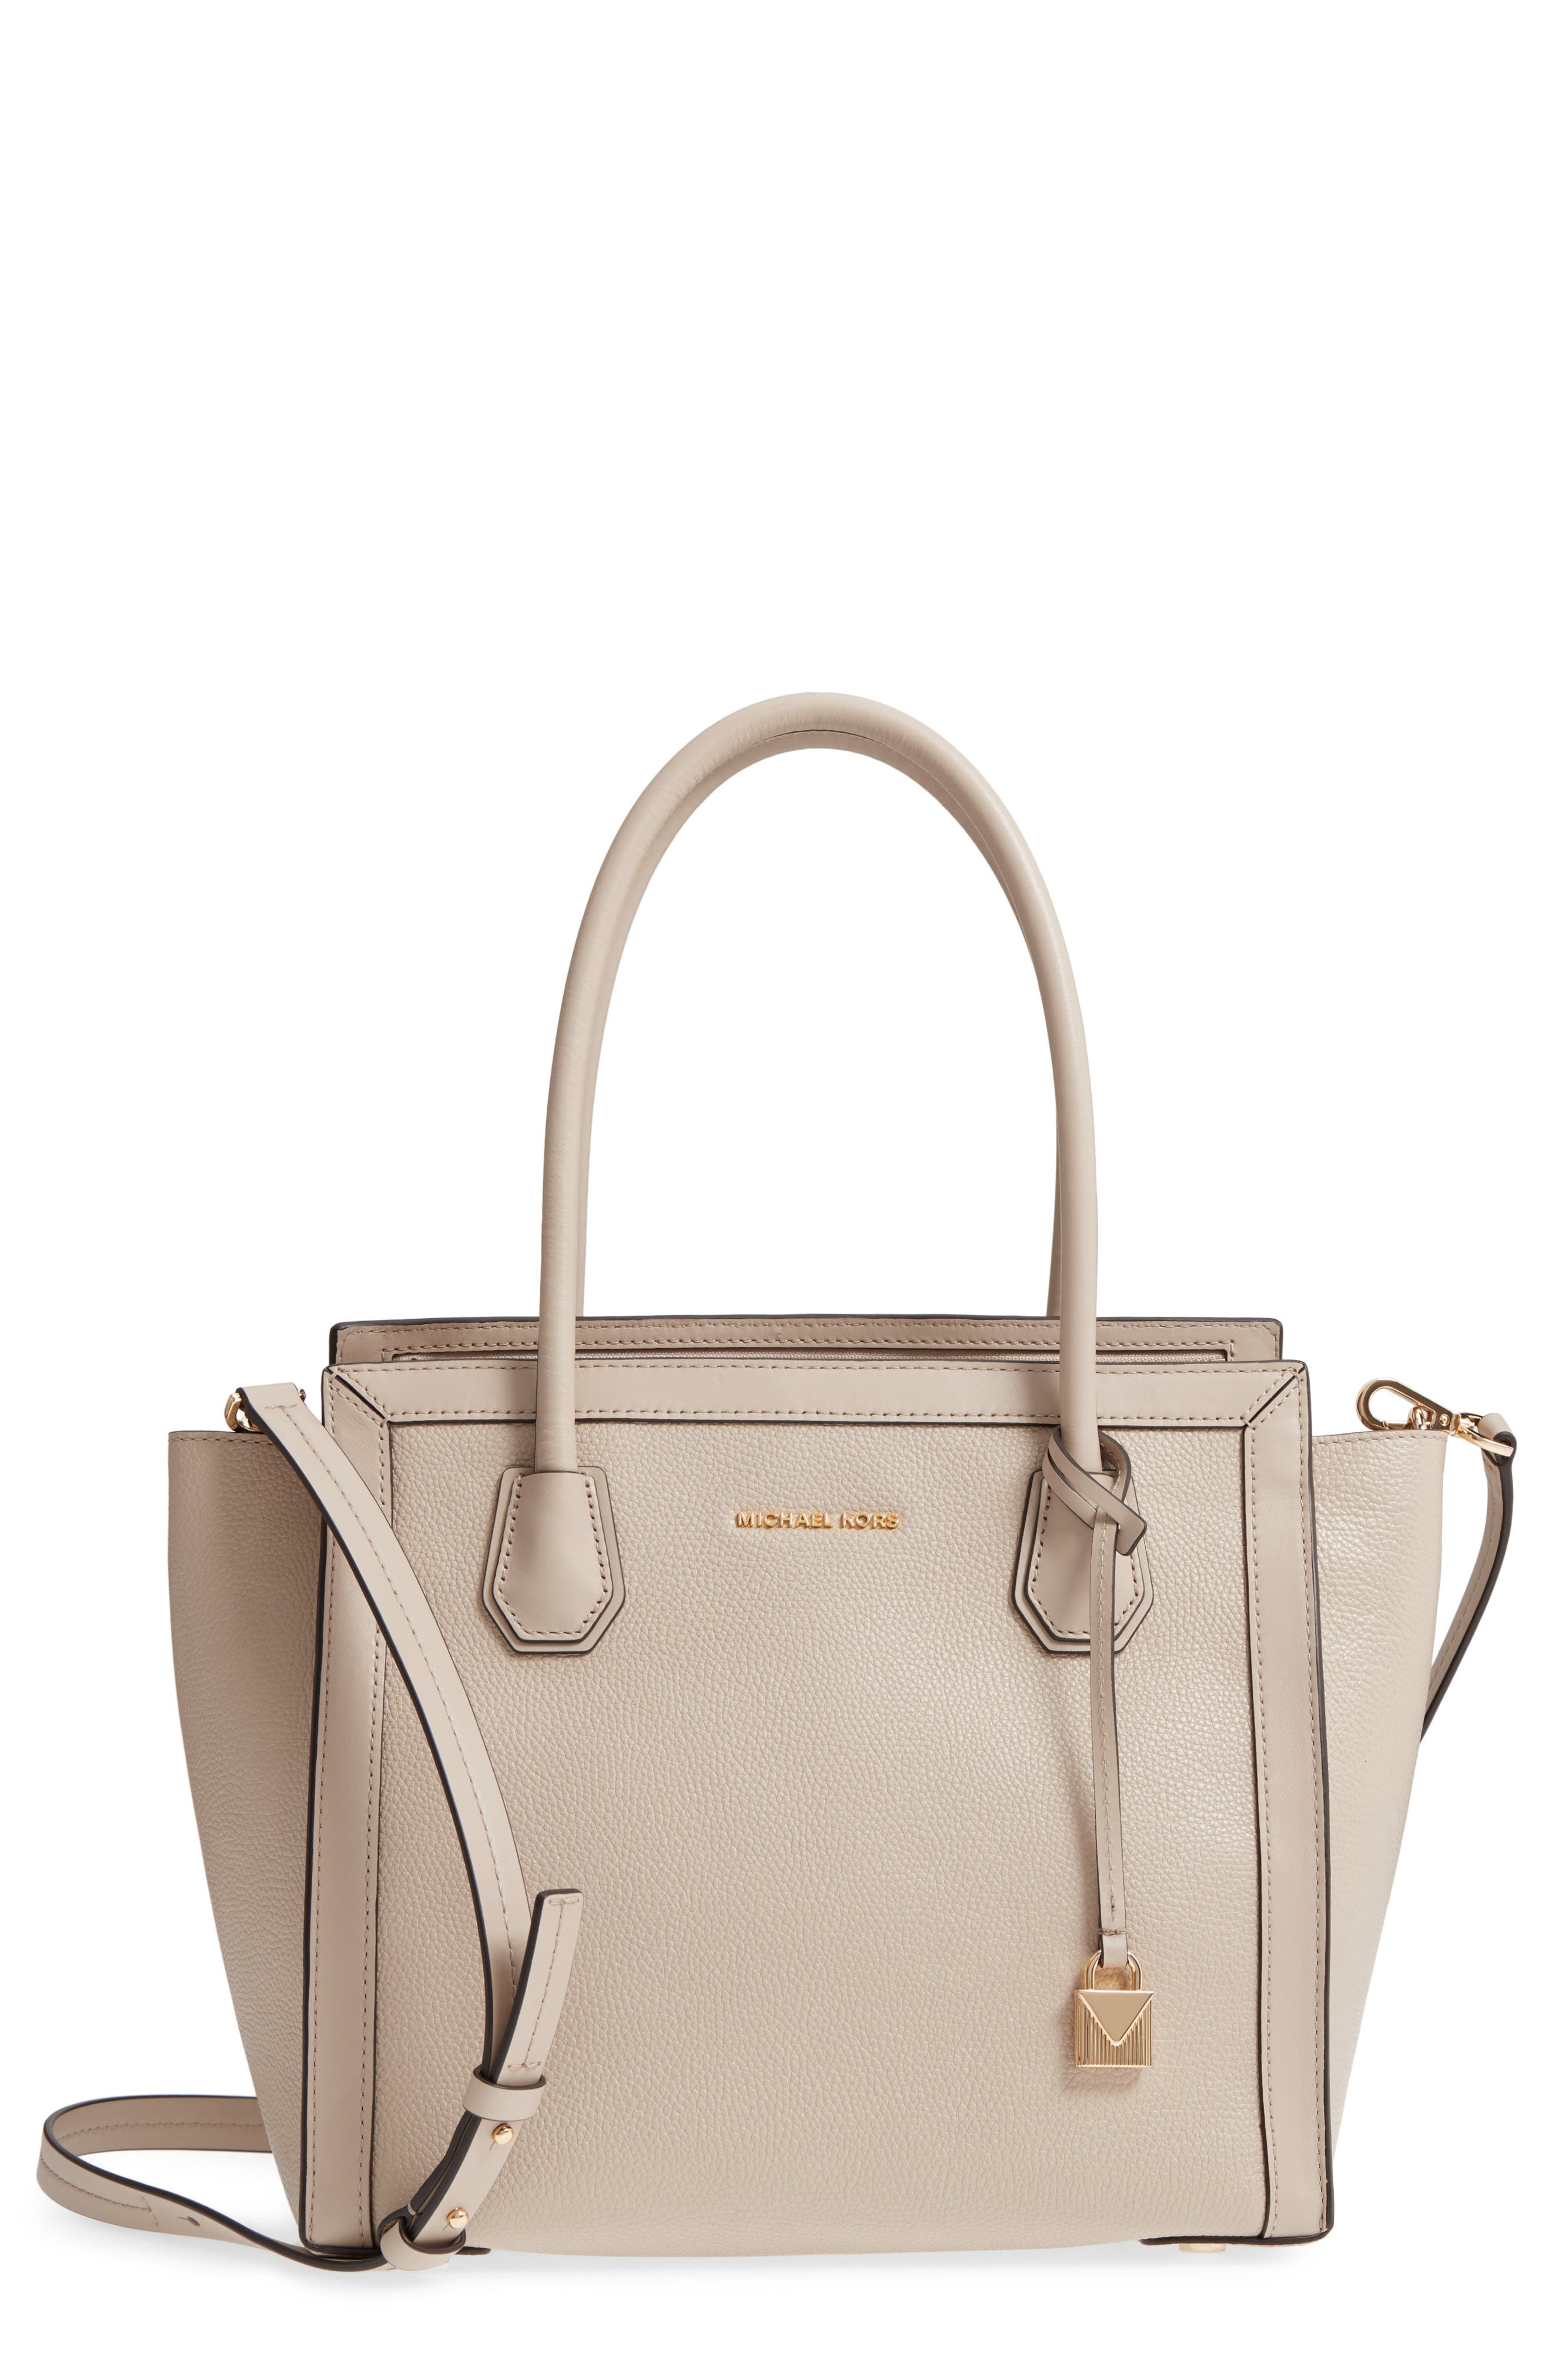 MICHAEL Michael Kors Mercer Studio Leather Tote